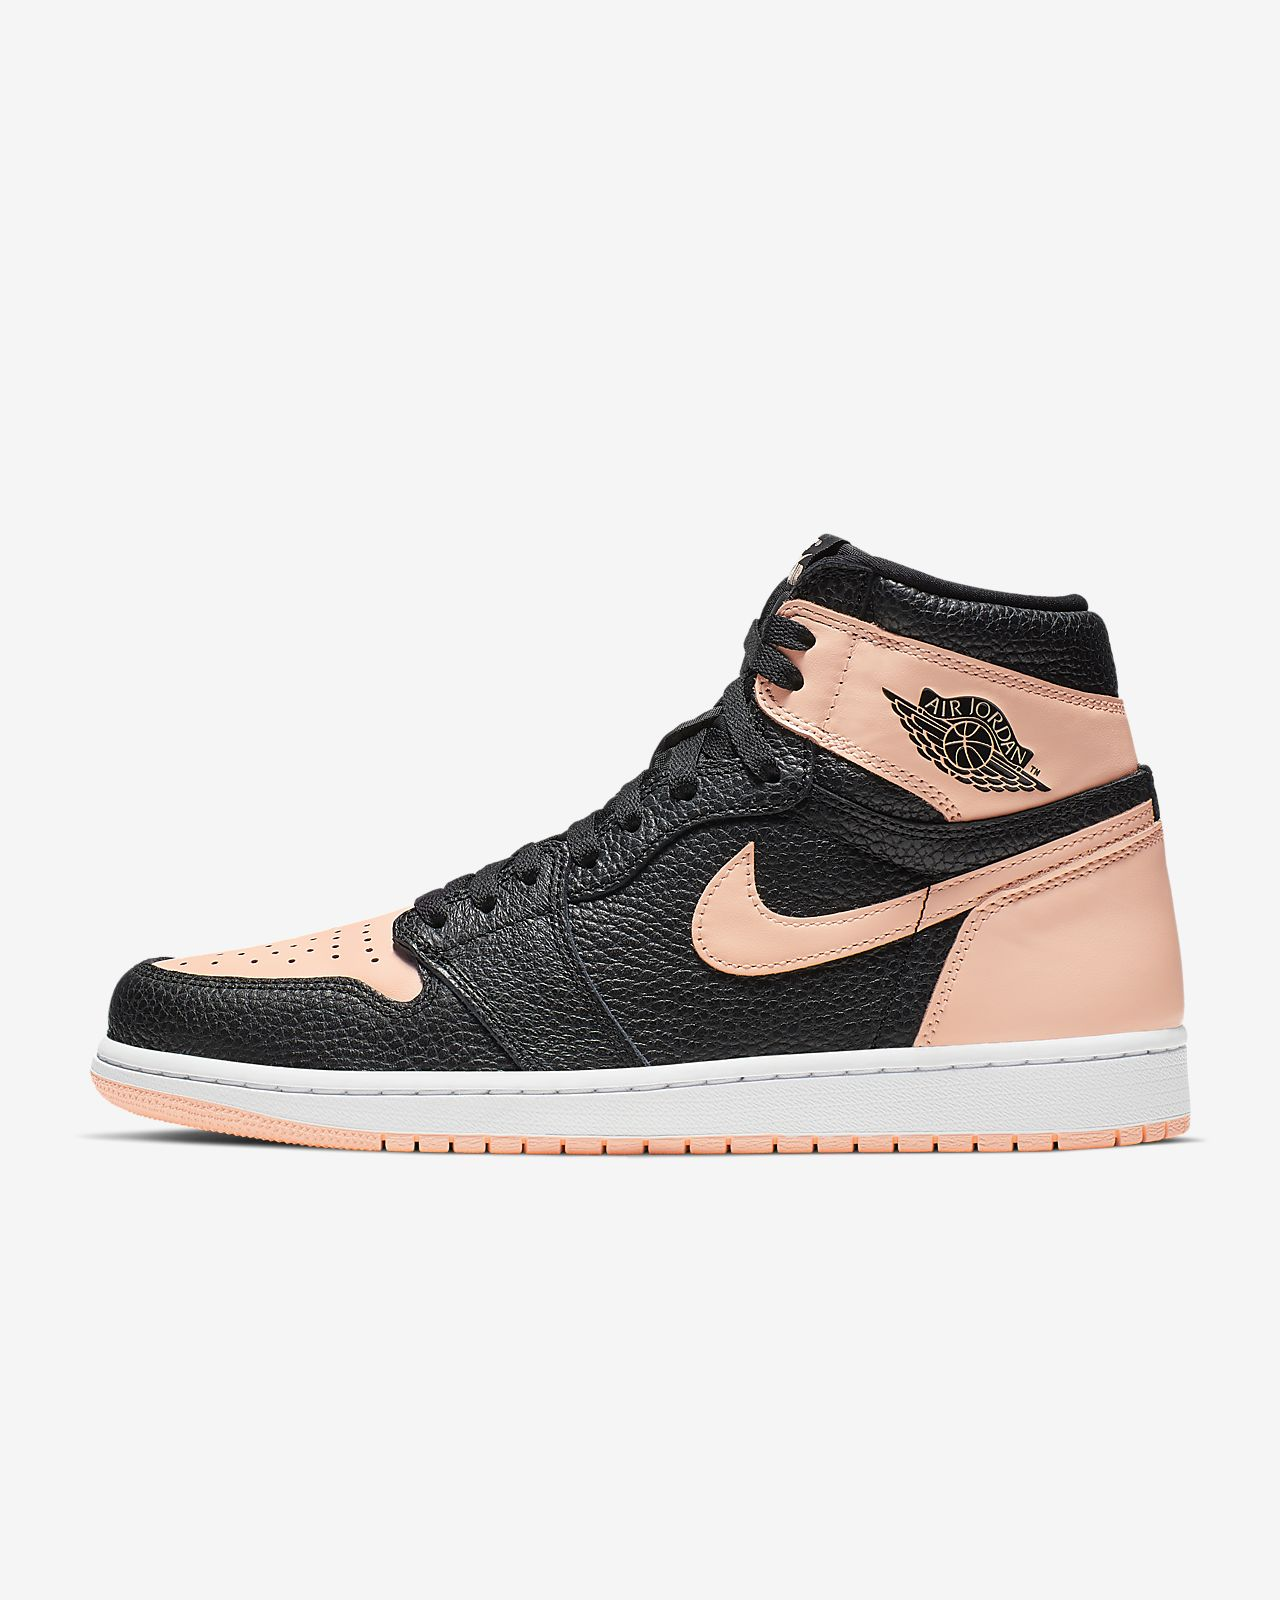 ac91a2c5c4ae Air Jordan 1 Retro High OG Shoe. Nike.com